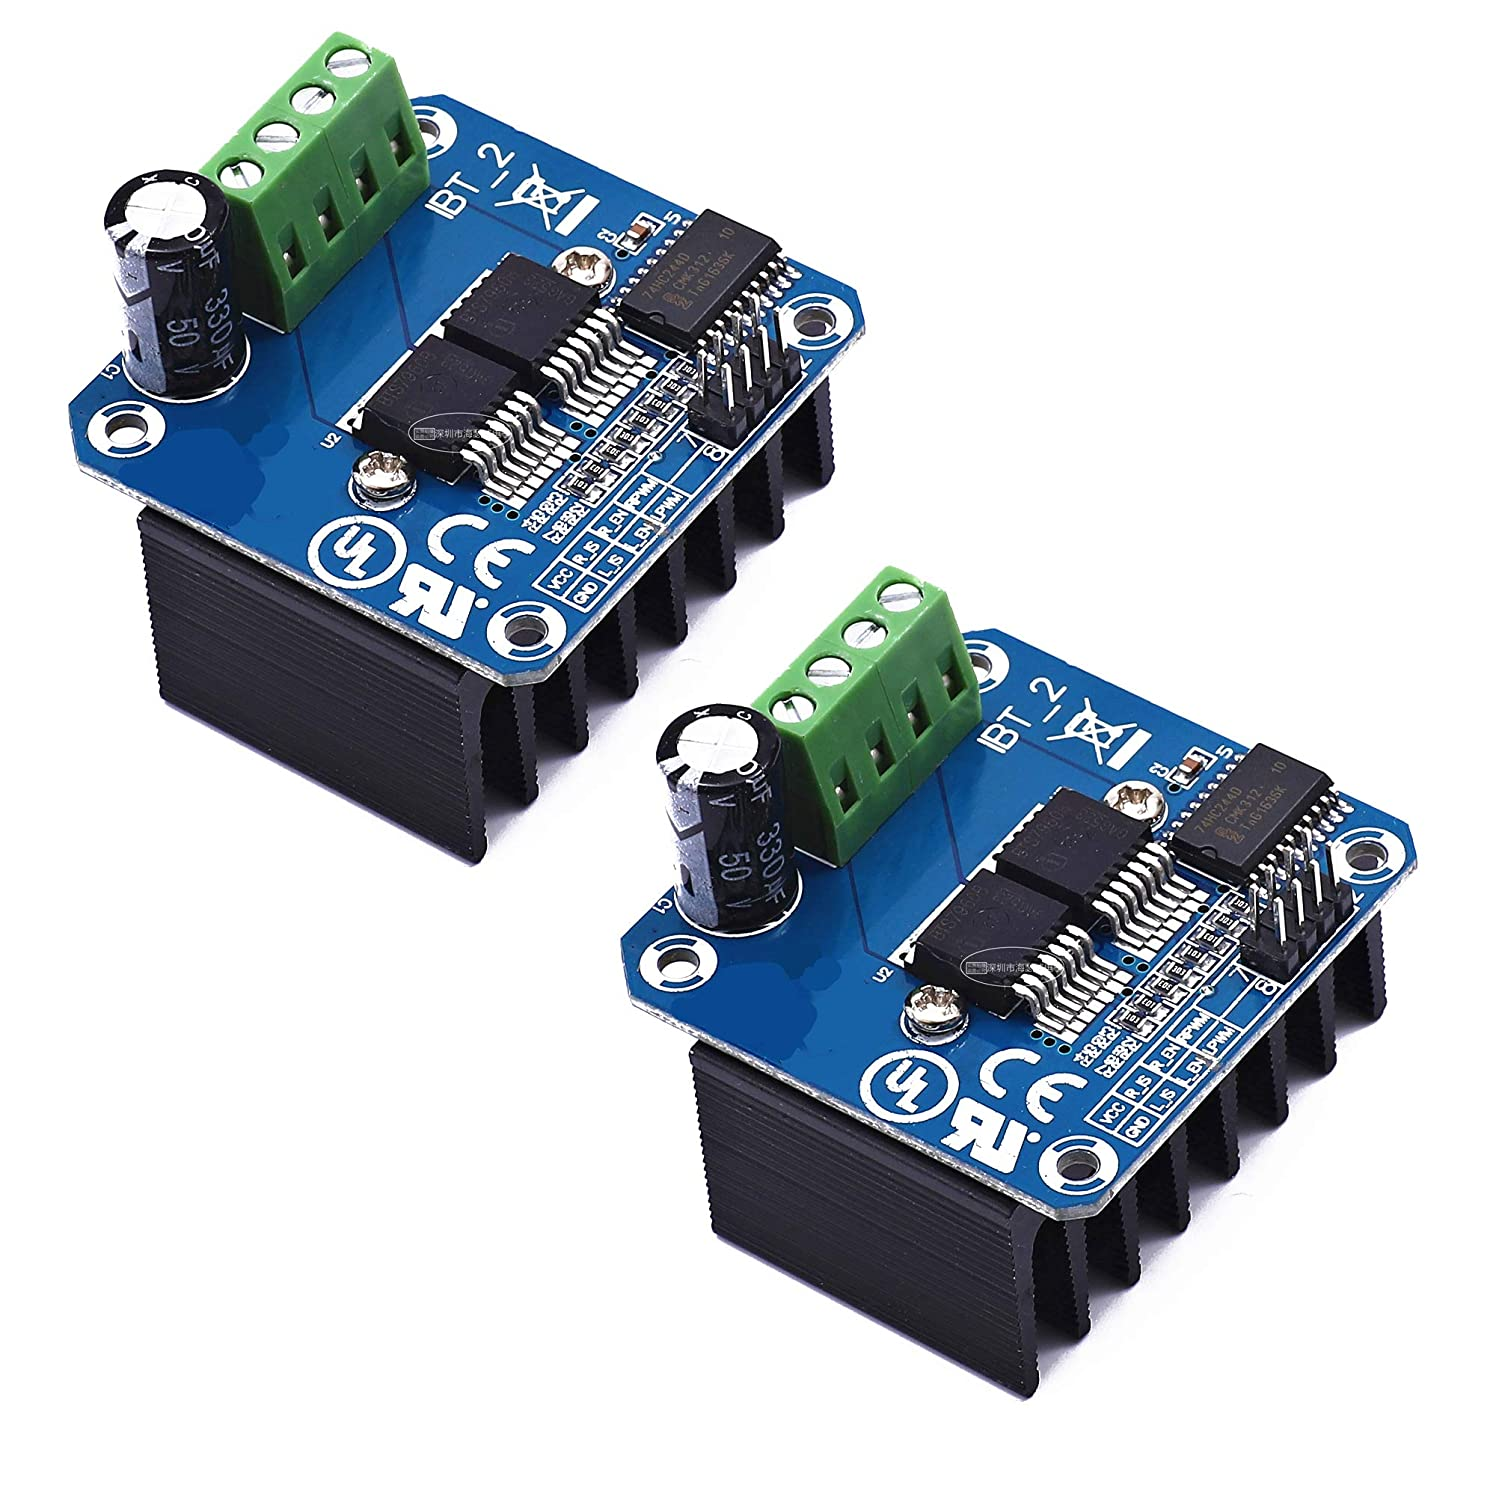 B07TFB22H5 2pcs BTS7960 43A High Power Motor Driver Module/Smart Car Driver Module for Arduino Current Limit 81PIPdnFlwL